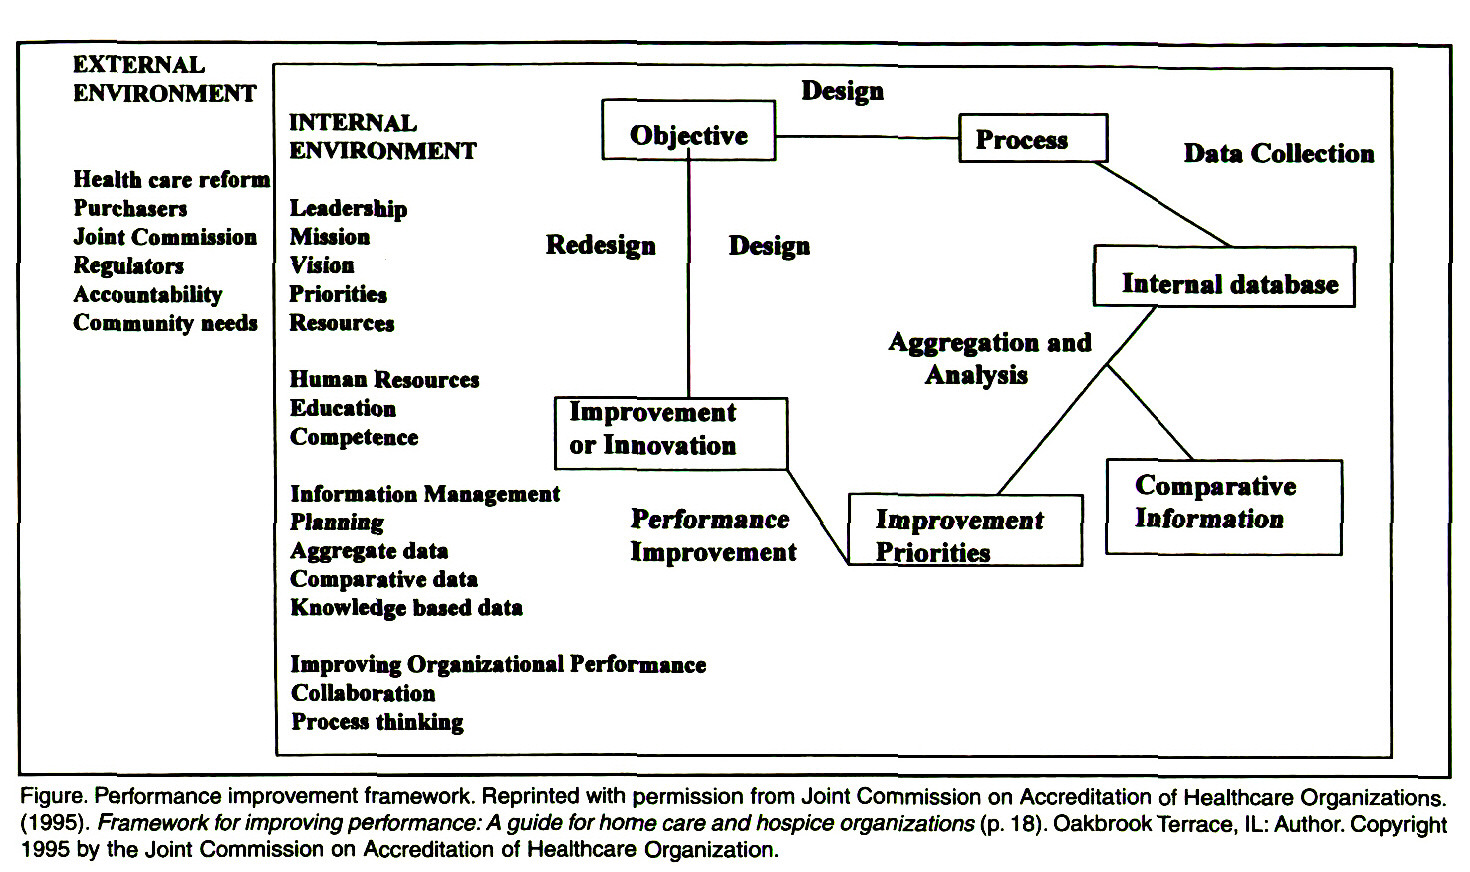 Figure. Performance improvement framework. Reprinted with permission from Joint Commission on Accreditation of Healthcare Organizations. (1 995). Framework lor improving performance: A guide for home care and hospice organizations (p. 1 8). Oakbrook Terrace, IL: Author. Copyright 1995 by the Joint Commission on Accreditation of Healthcare Organization.